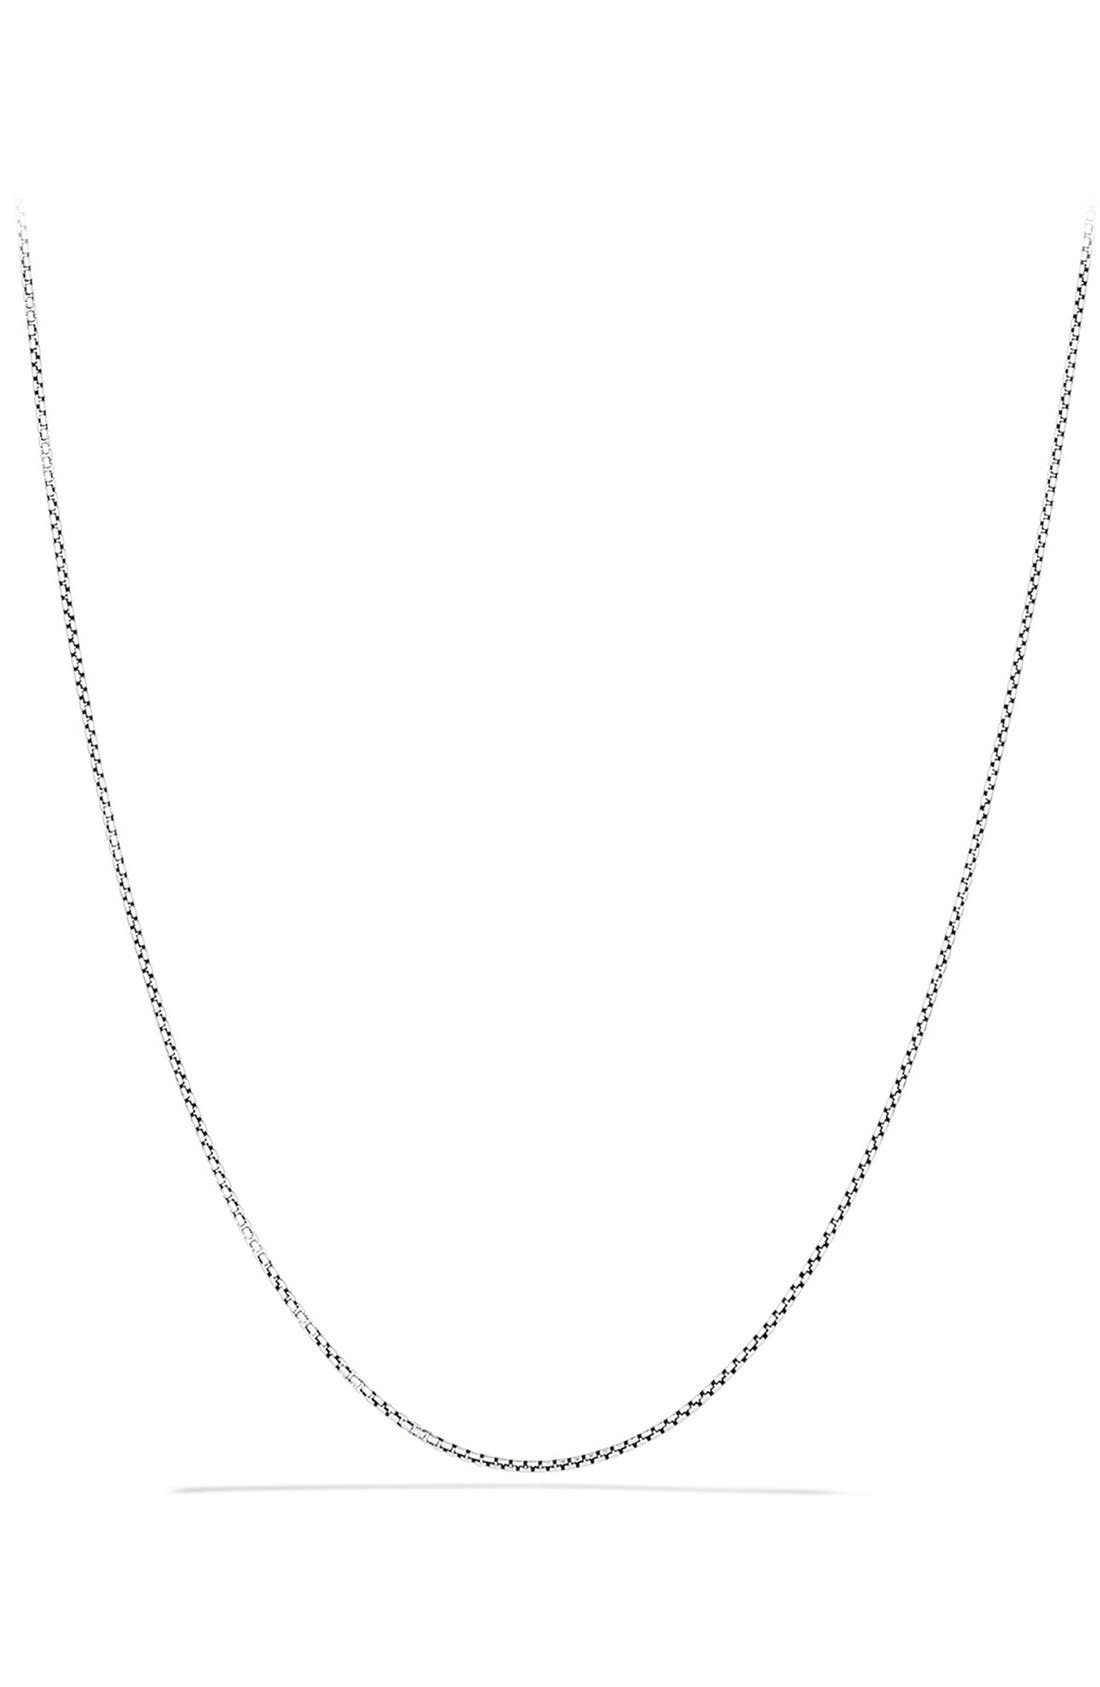 'Chain' Baby Box Chain Necklace,                             Main thumbnail 1, color,                             TWO TONE